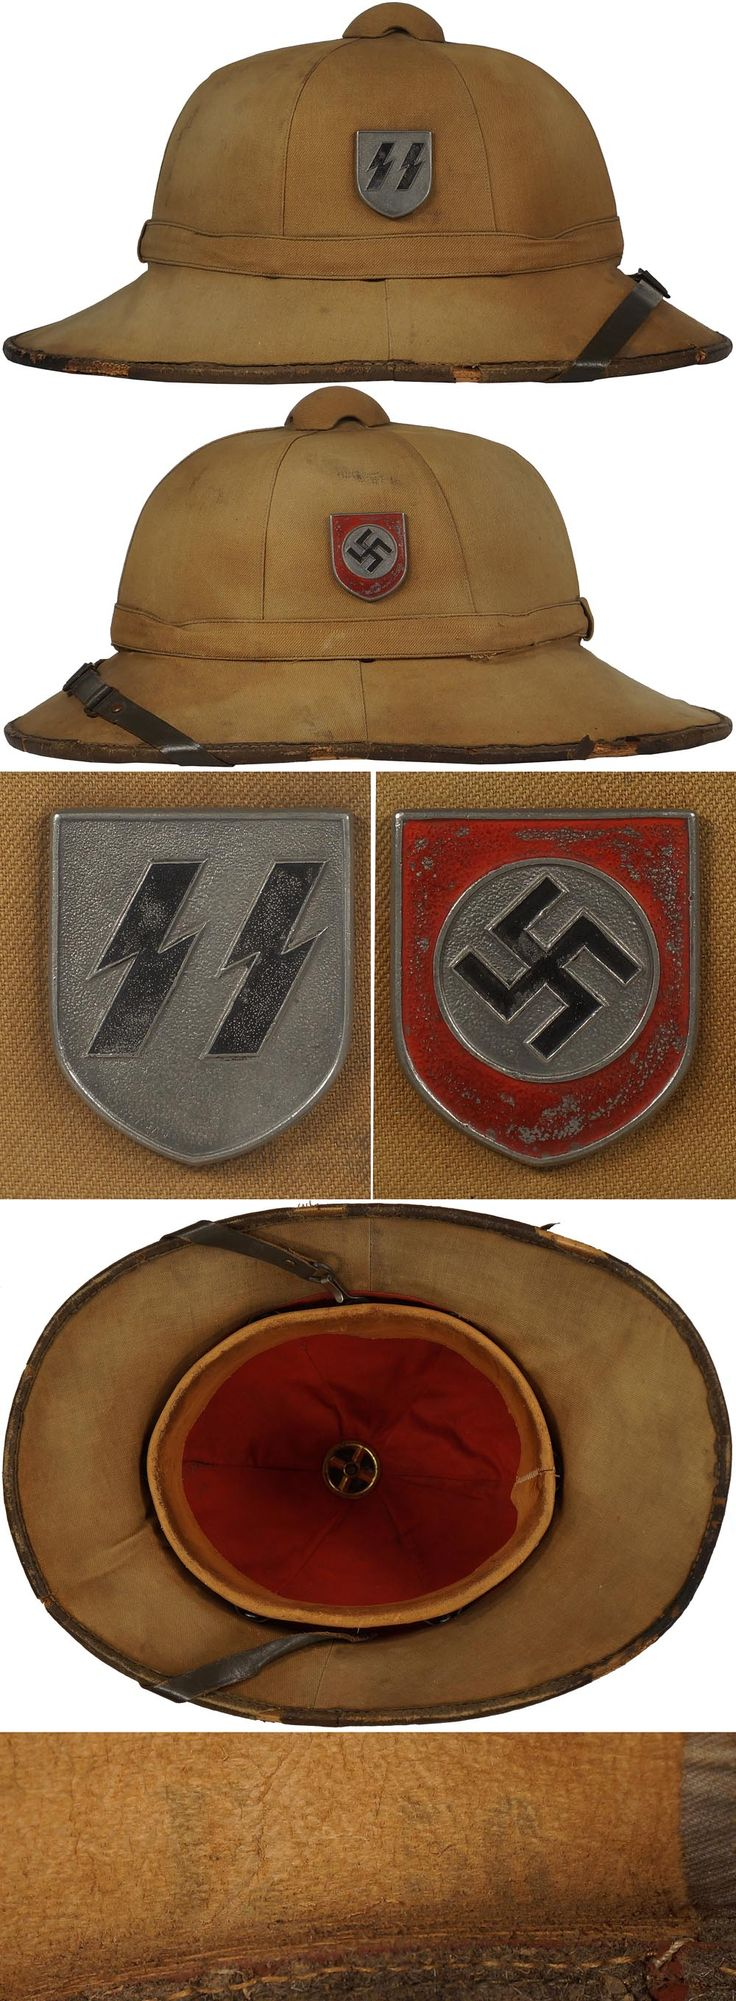 S018172 WAFFEN-SS FIRST PATTERN TROPICAL PITH HELMET. (Tropenhelm)  BACKGROUND: Originally tropical uniforms, headgear and equipment were first developed and introduced in late 1940 and early 1941 for wear by DAK, Deutsches Afrika Korps, (German Africa Corps), army personnel serving in North Africa. As the Waffen-SS were not engaged in North Africa they were not originally included in the issue of tropical items. Regulations issued in early 1941 actually prohibited Waffen-SS personnel from…